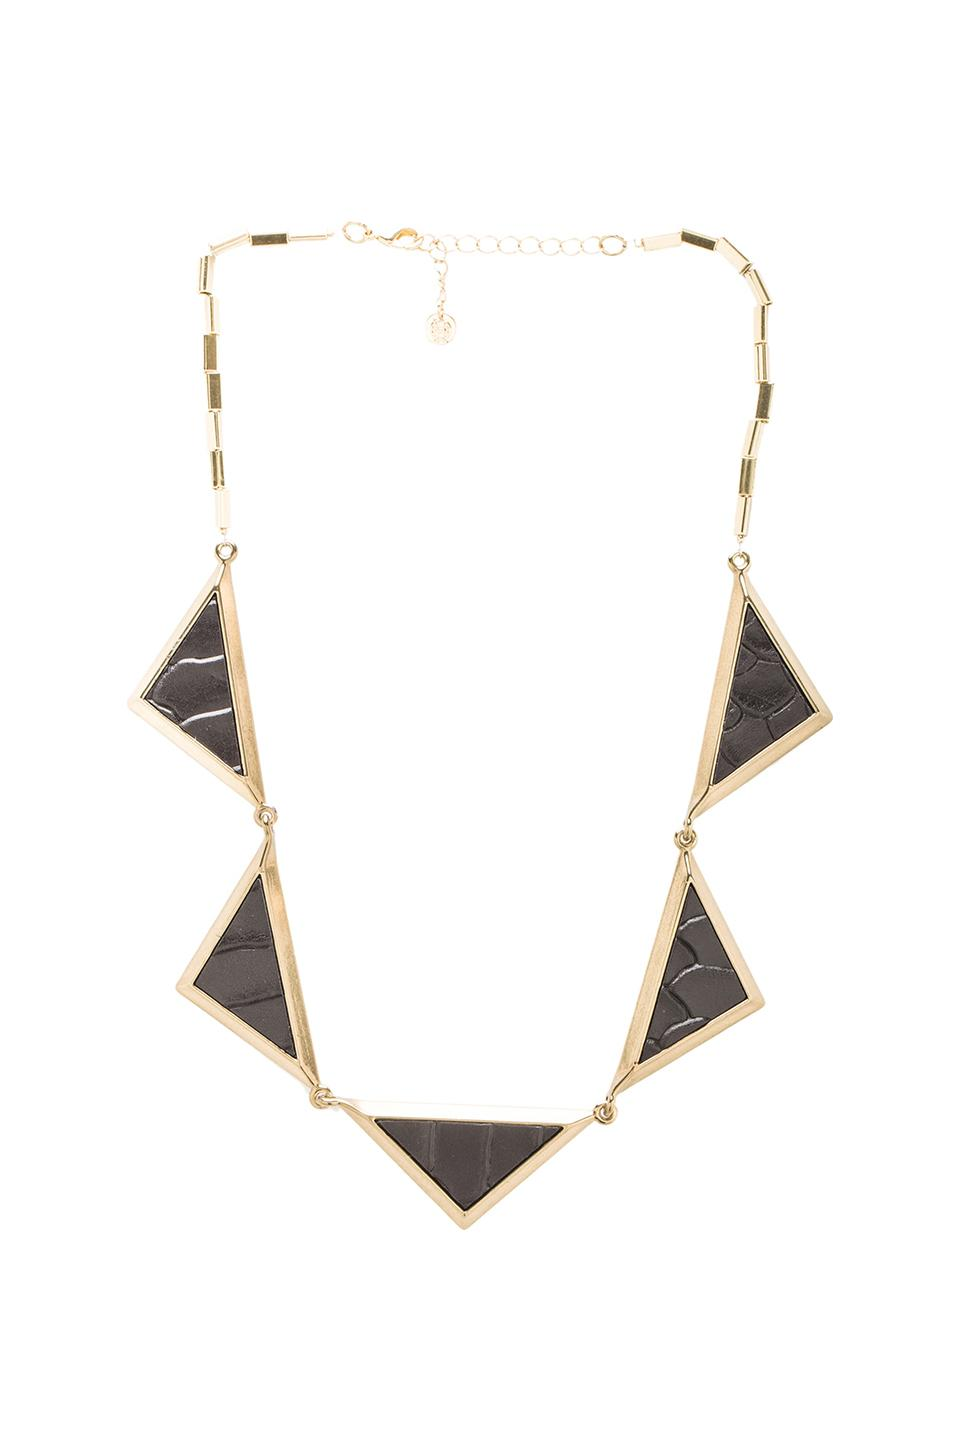 House of Harlow 1960 House of Harlow Triptych Collar in Gold